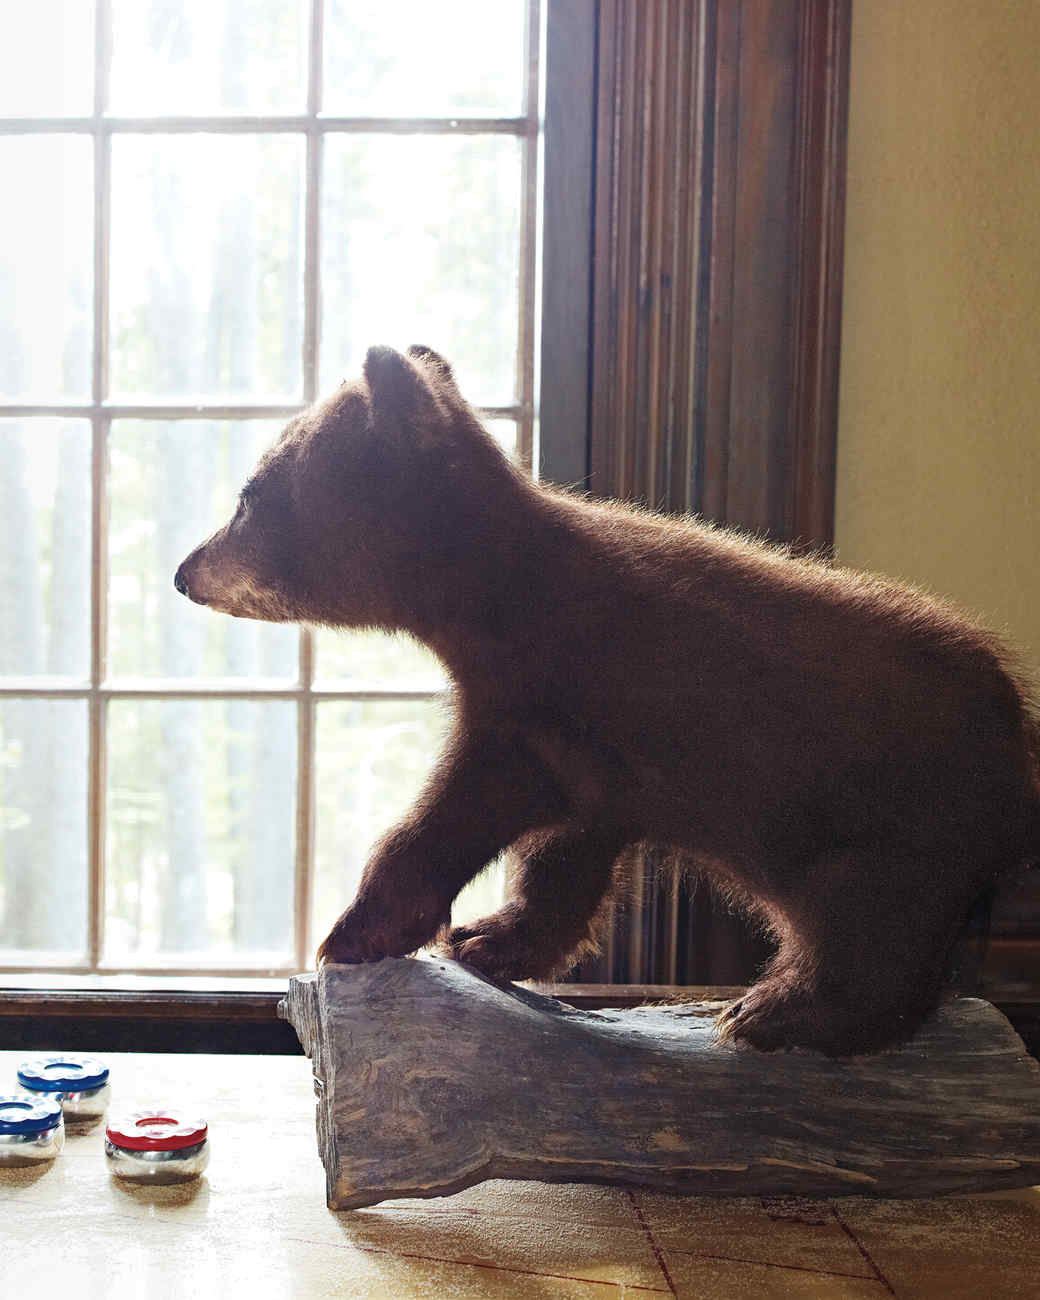 cub-taxidermy-1011mld106418.jpg